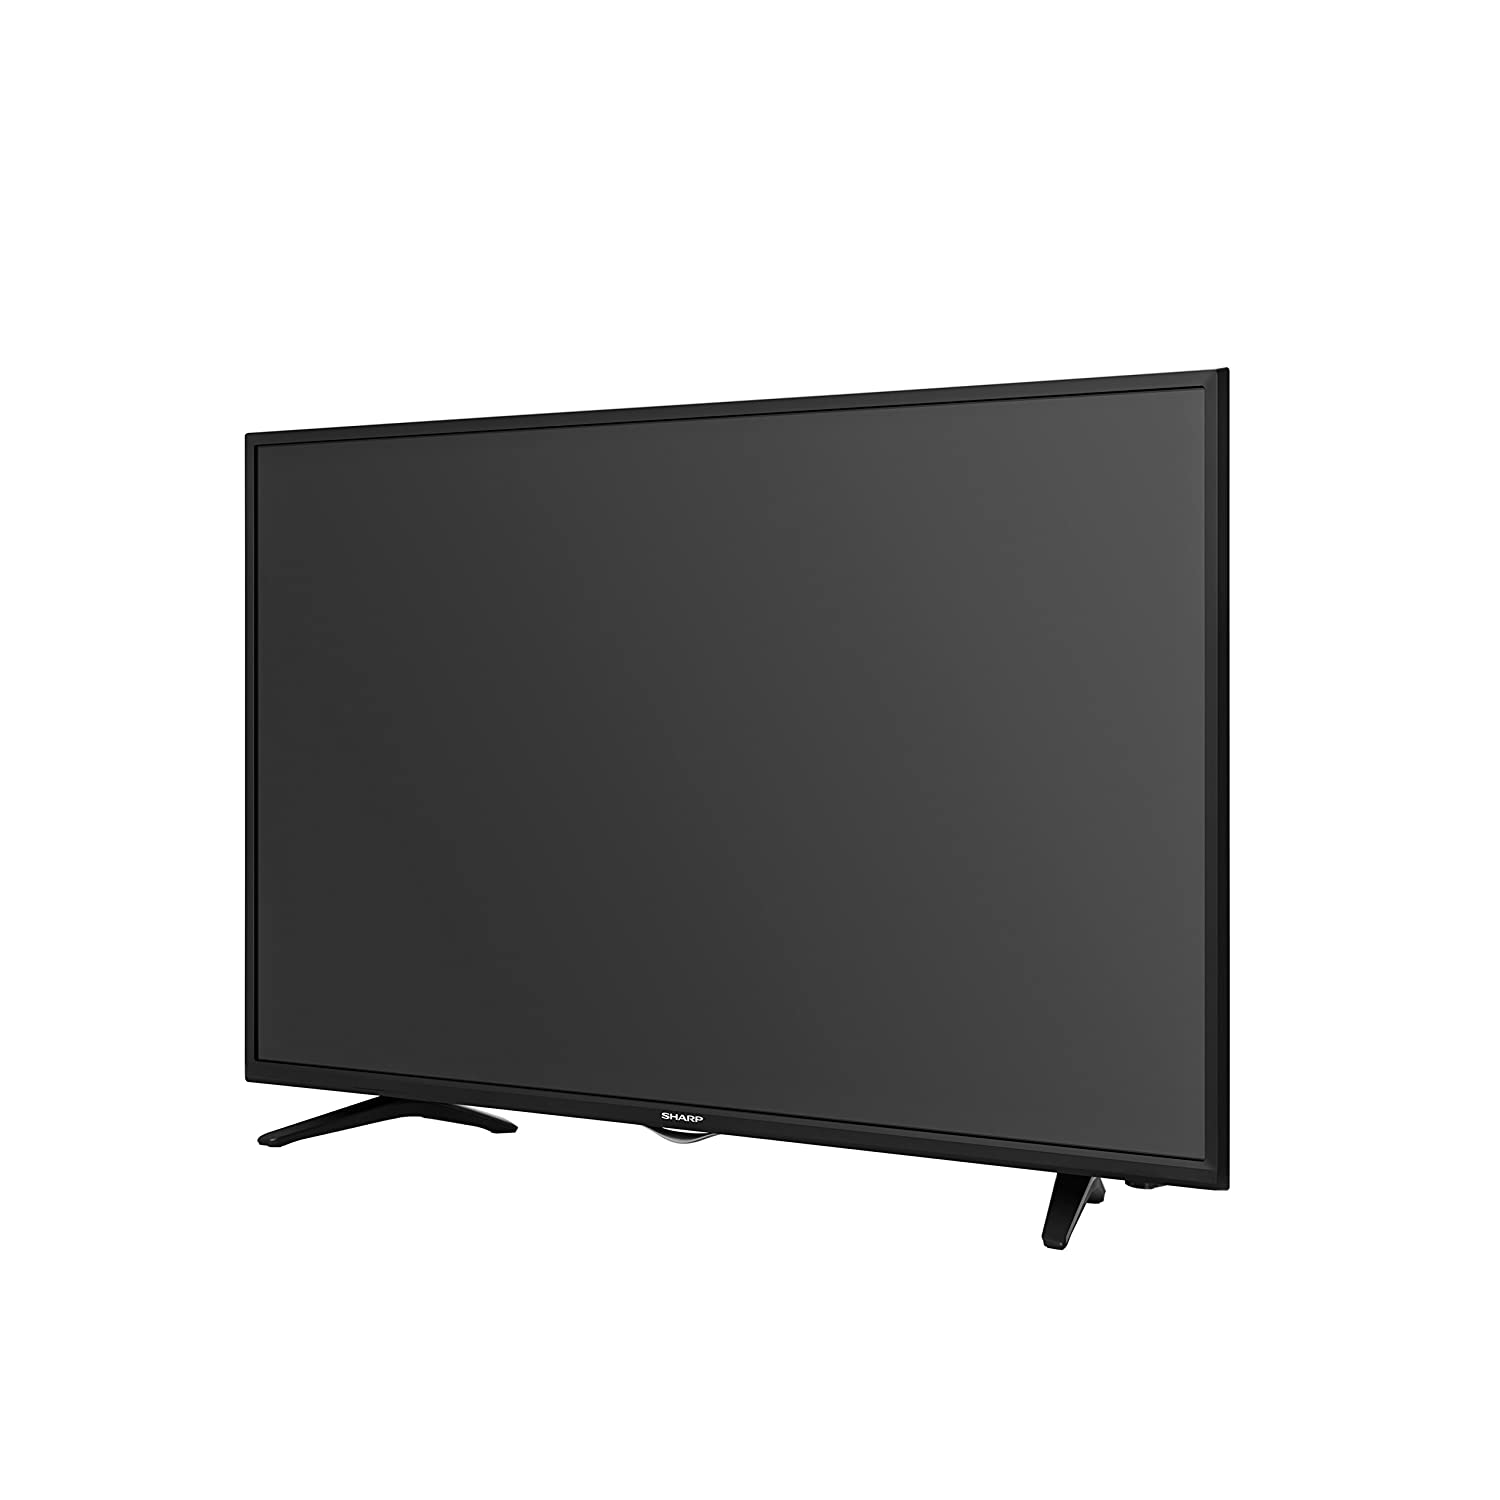 Sharp P5000U 43-inch Full HD Smart TV with built-in apps for Netflix, Vudu,  Pandora, Facebook and more